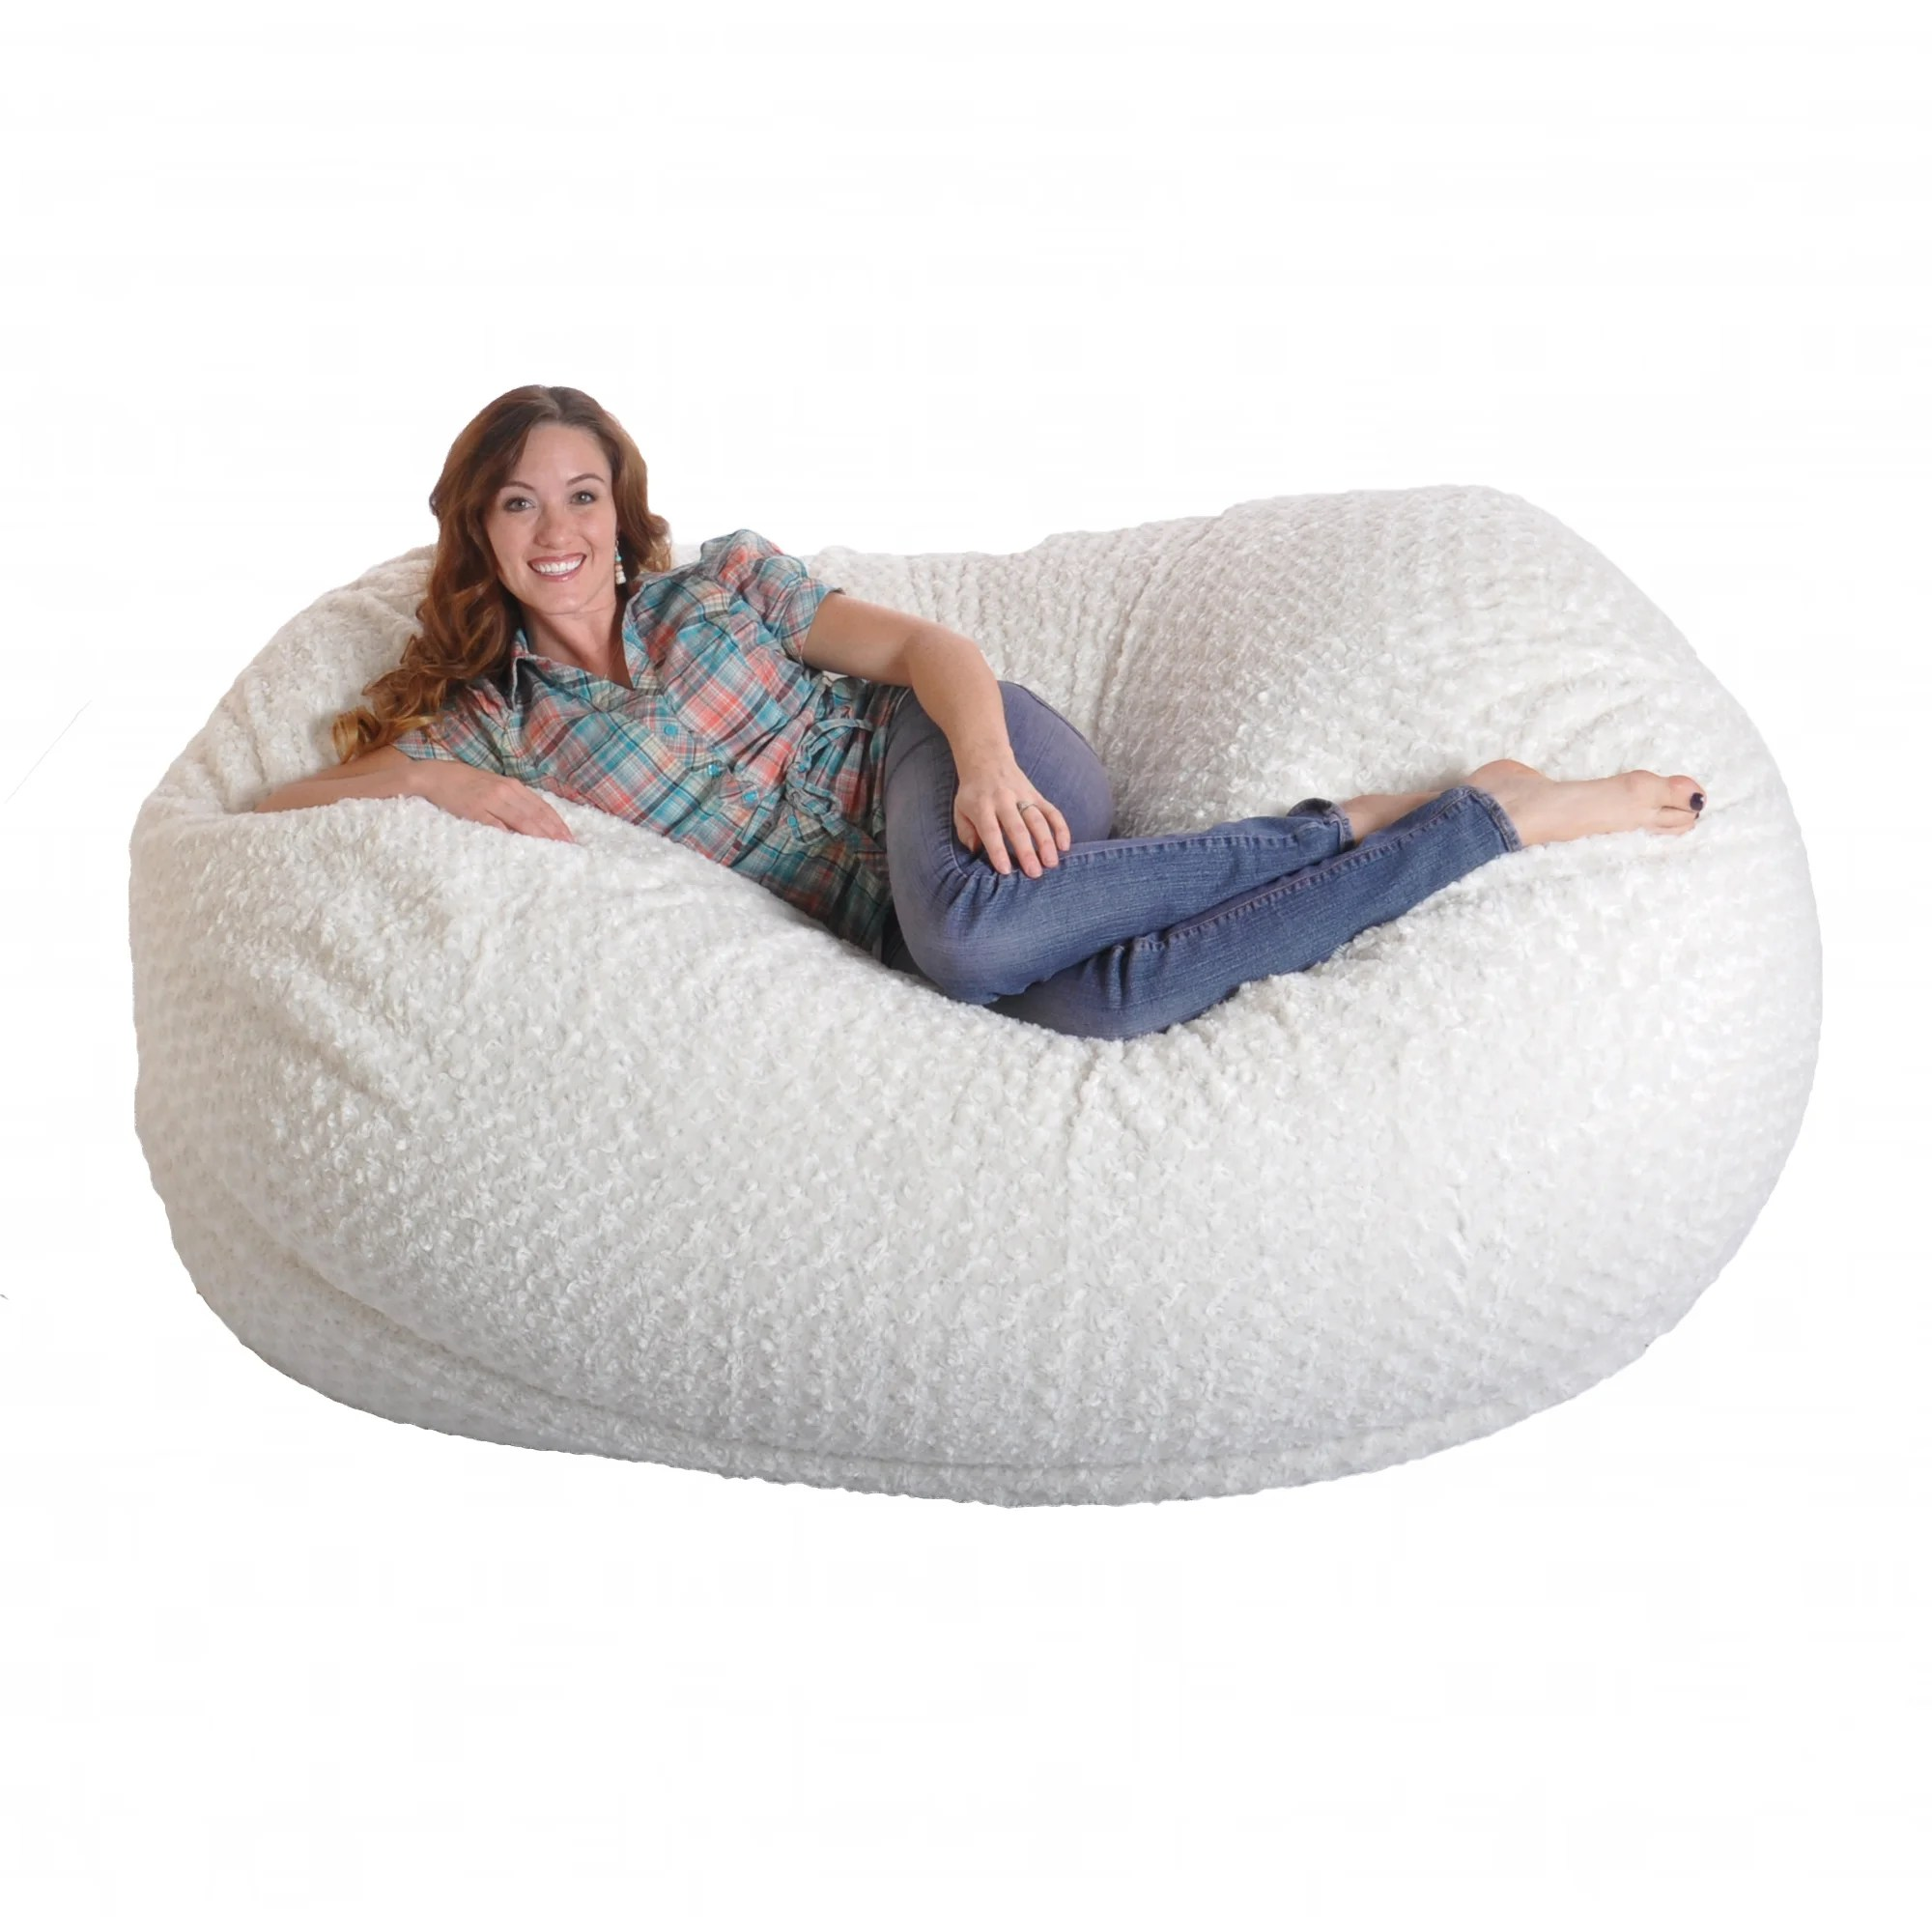 soft bean bag chairs chair design solidworks shop 6 foot white fur large oval microfiber memory foam free shipping today overstock com 8502975